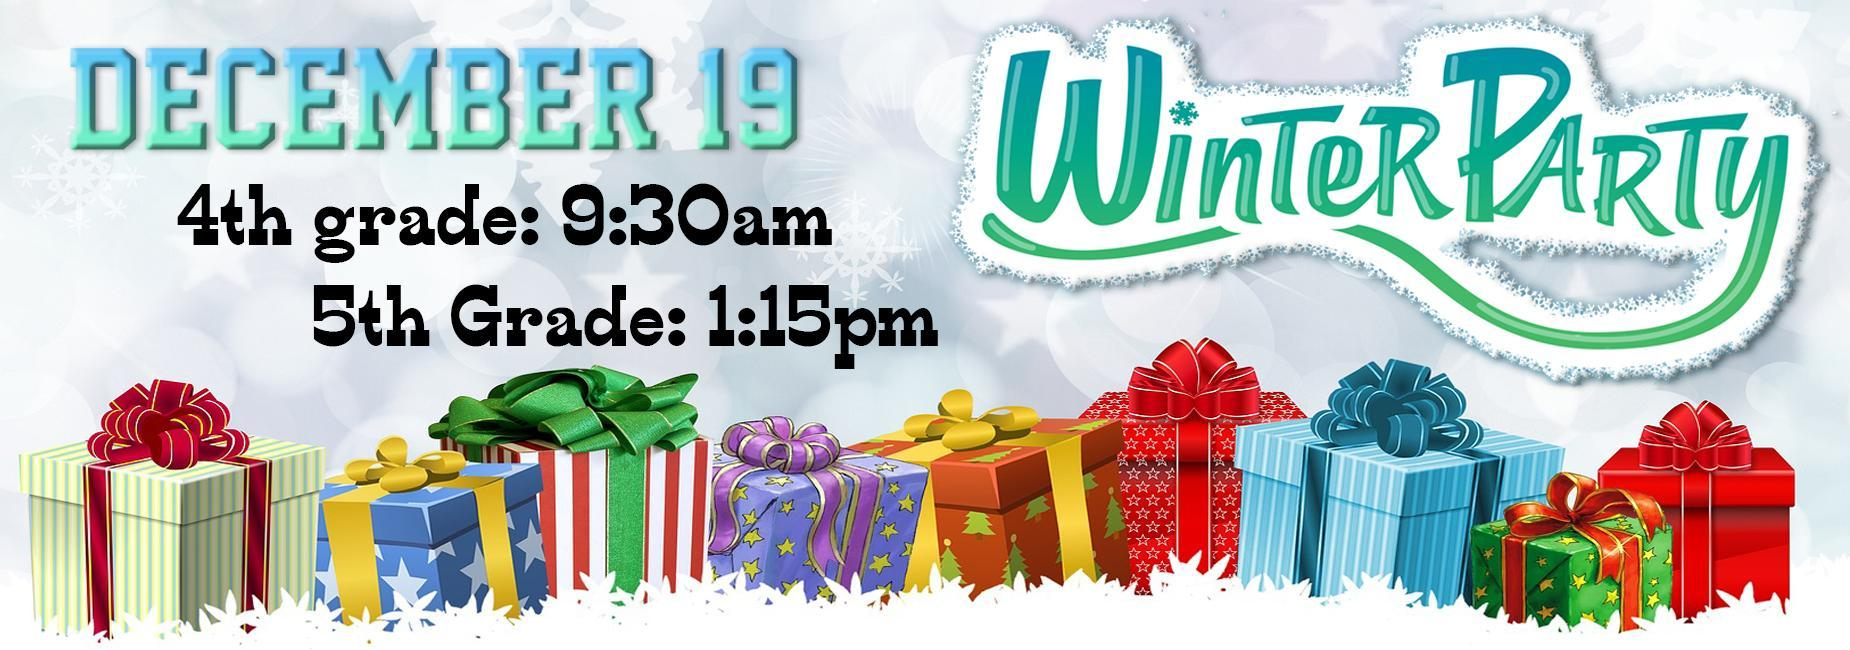 Winter Classroom Parties December 19th